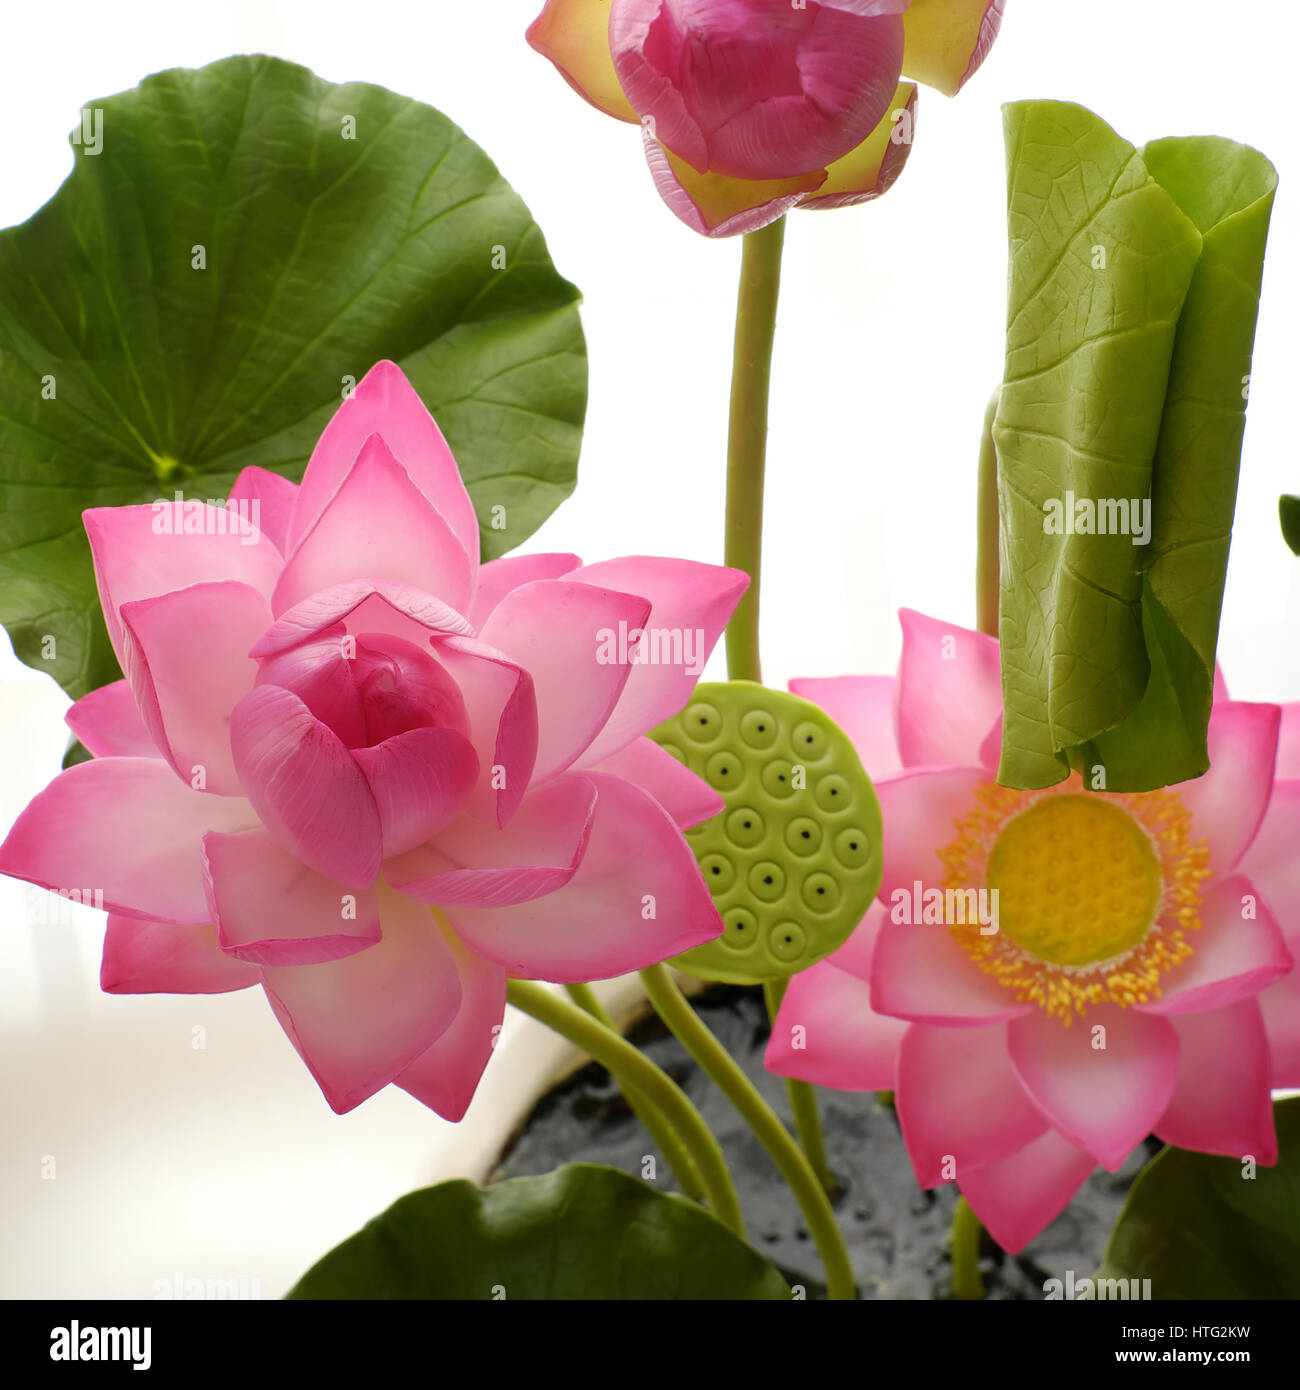 Artificial flower handmade clay lotus flower with green leaf pink artificial flower handmade clay lotus flower with green leaf pink petal diy art product for home decoration close up artwork on white background izmirmasajfo